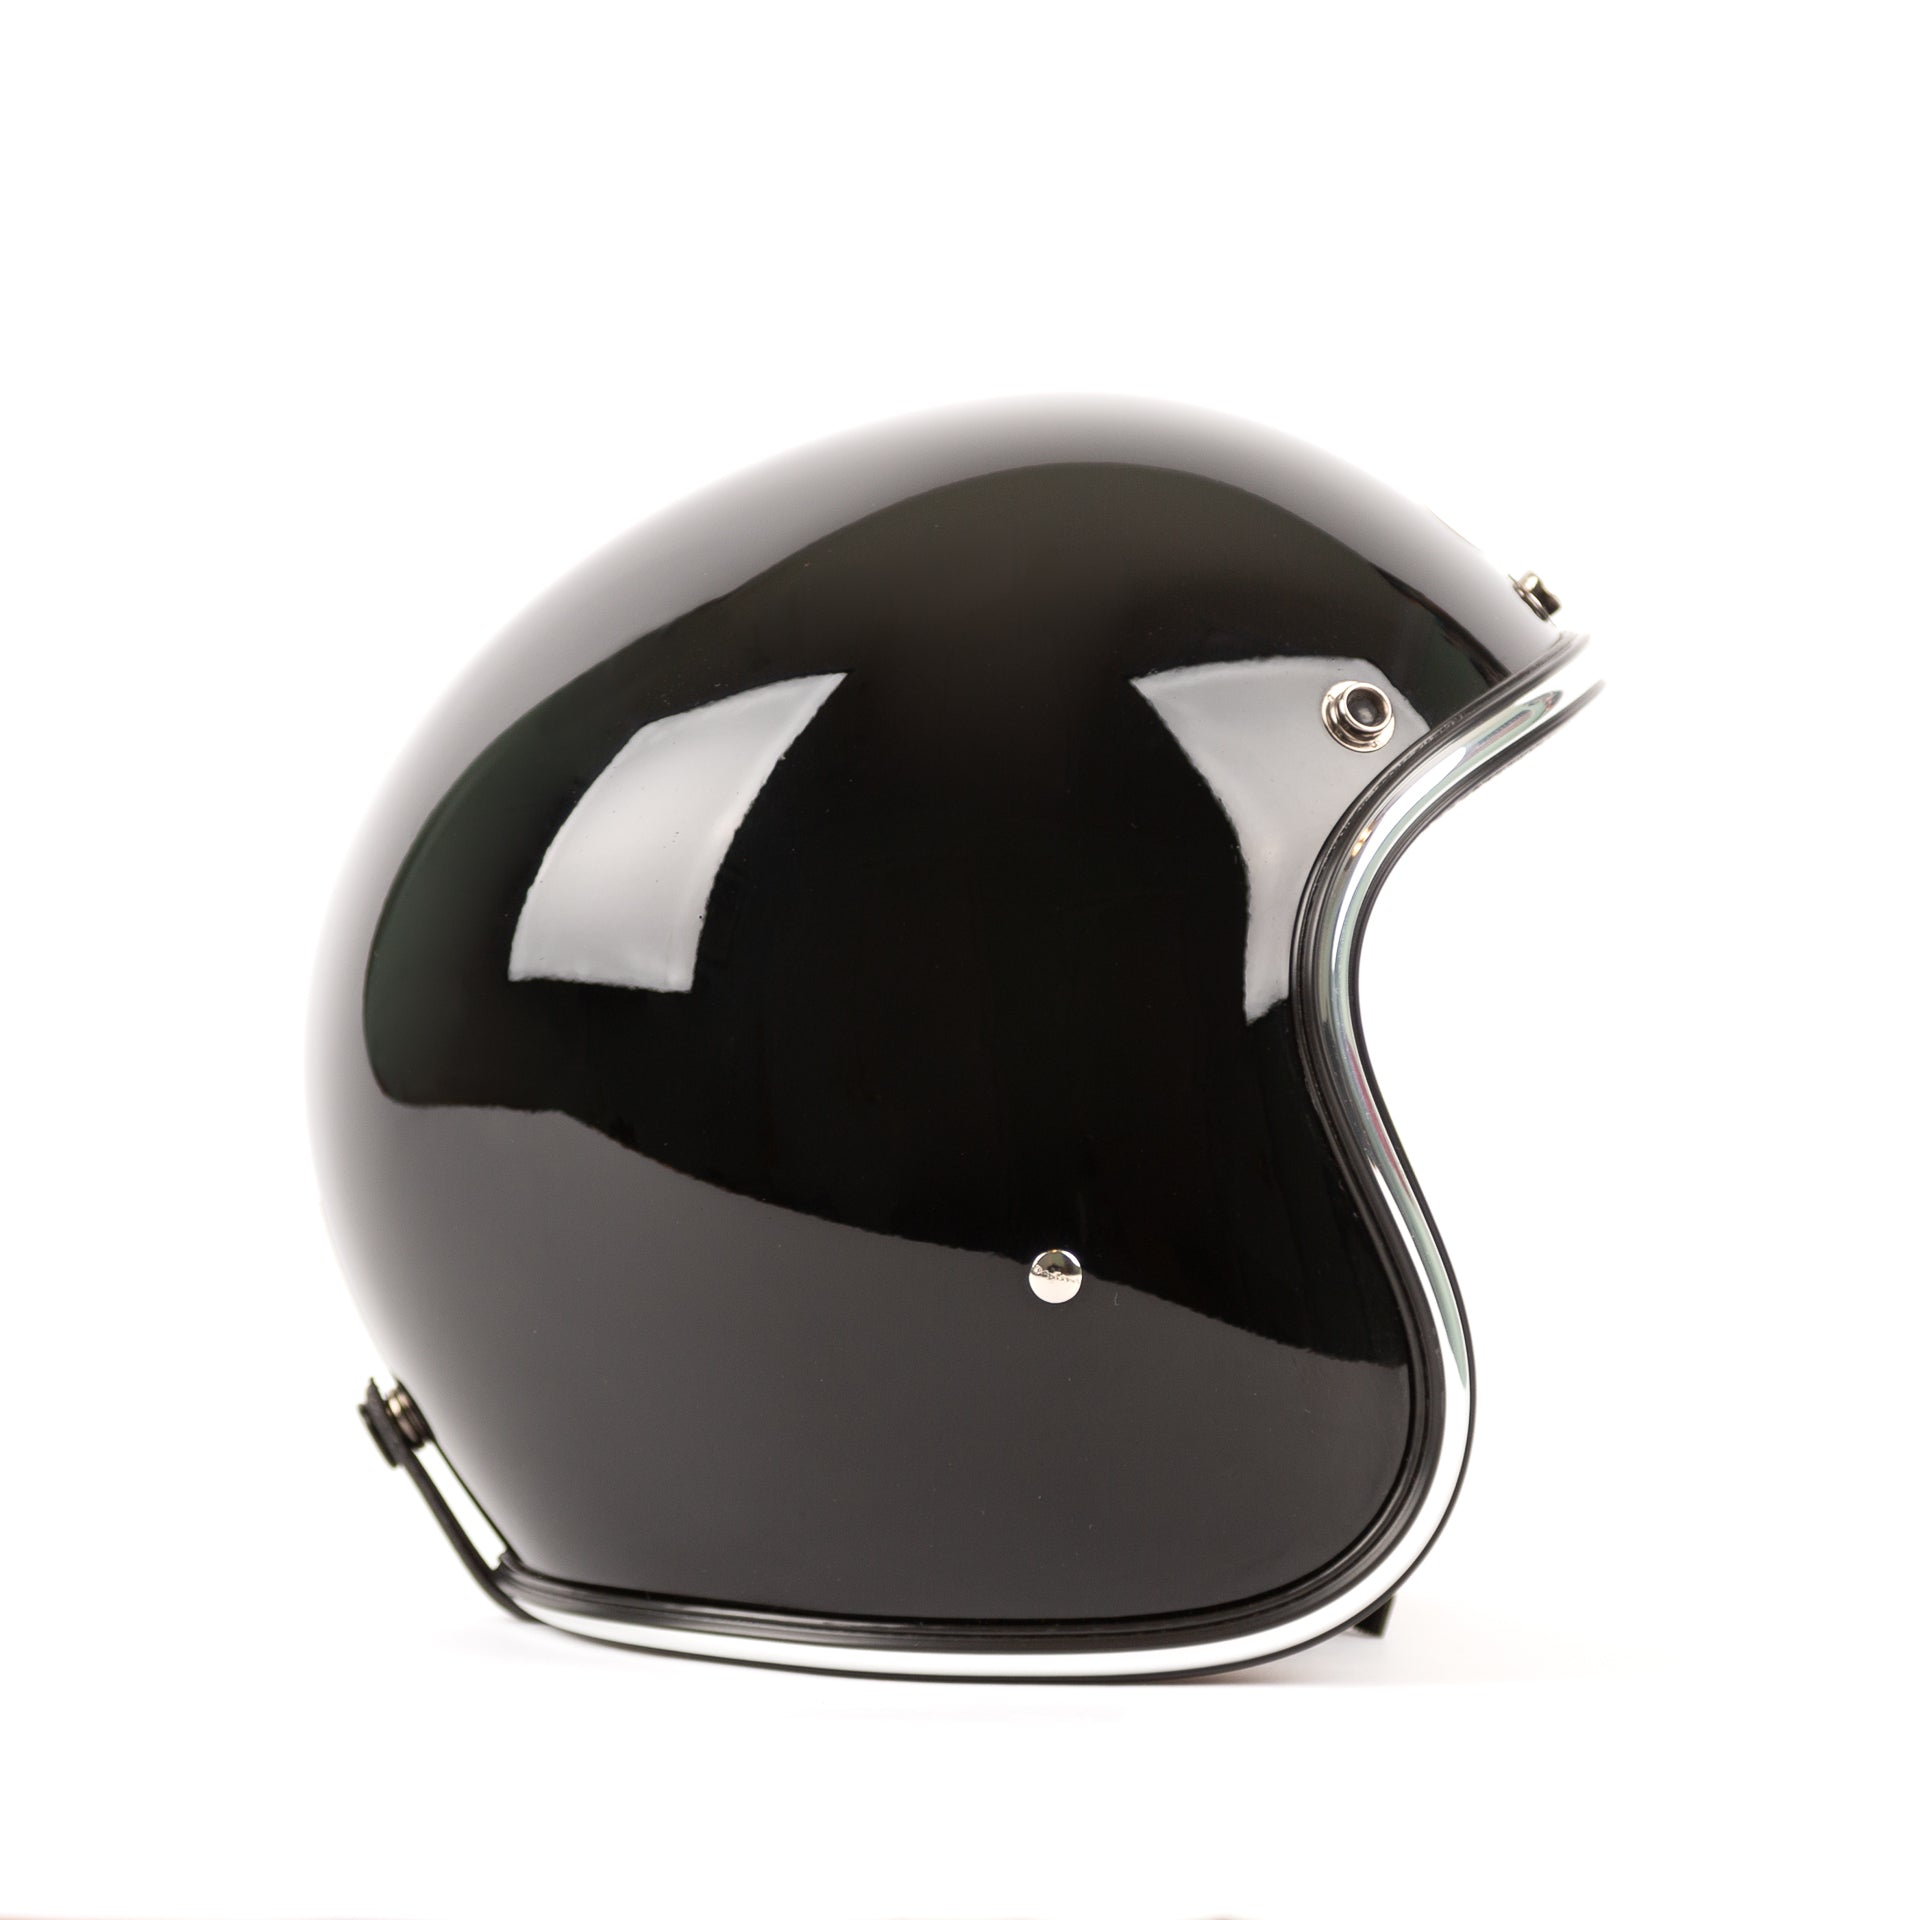 3/4 Novelty Helmet - Black - Apparel and Accessories - Prism Supply